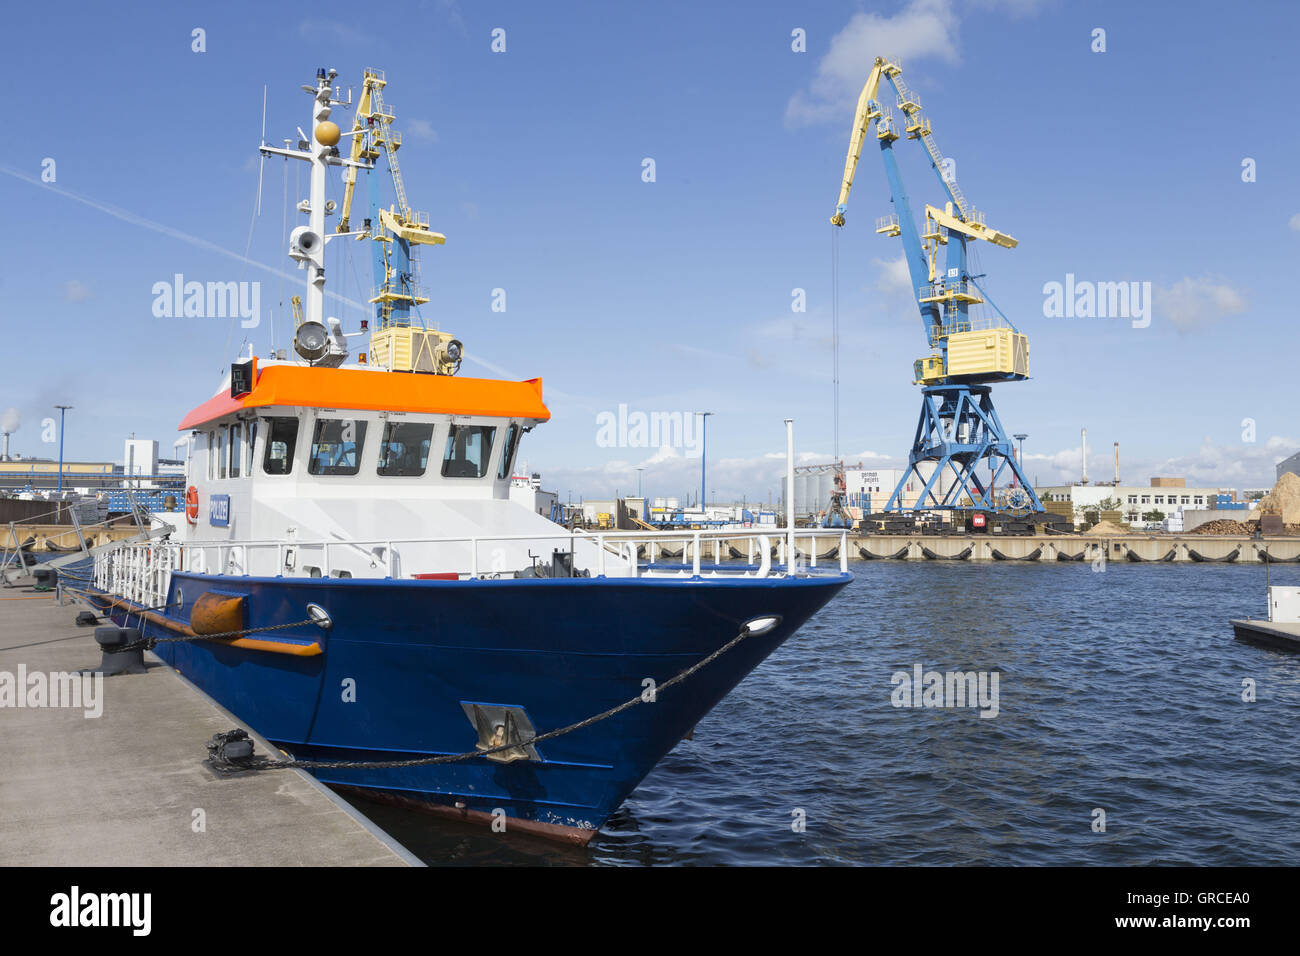 Police Boat In The Industrial Port Of Wismar In The Sunshine - Stock Image